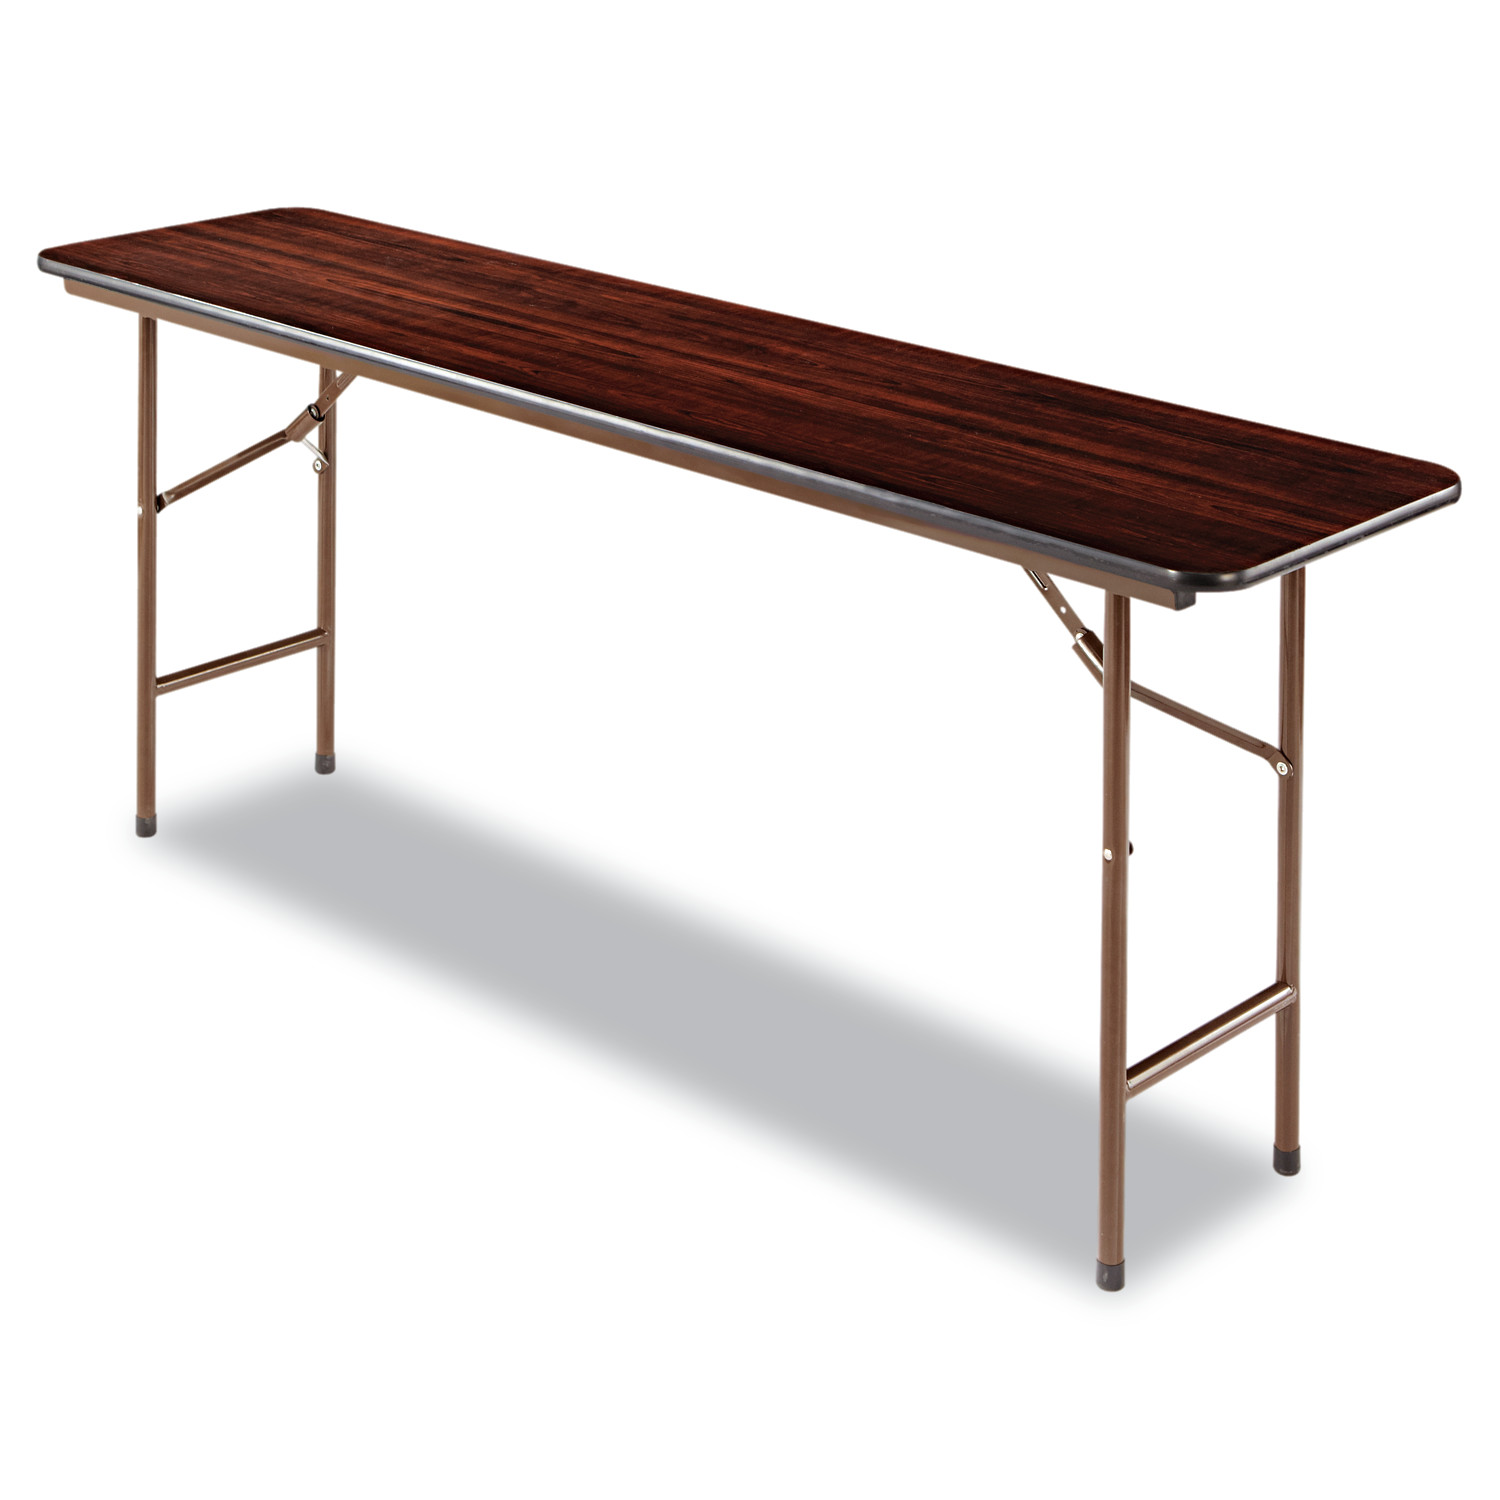 Alera Wood Folding Table, Rectangular, 72w x 18d x 29h, Walnut by ALERA